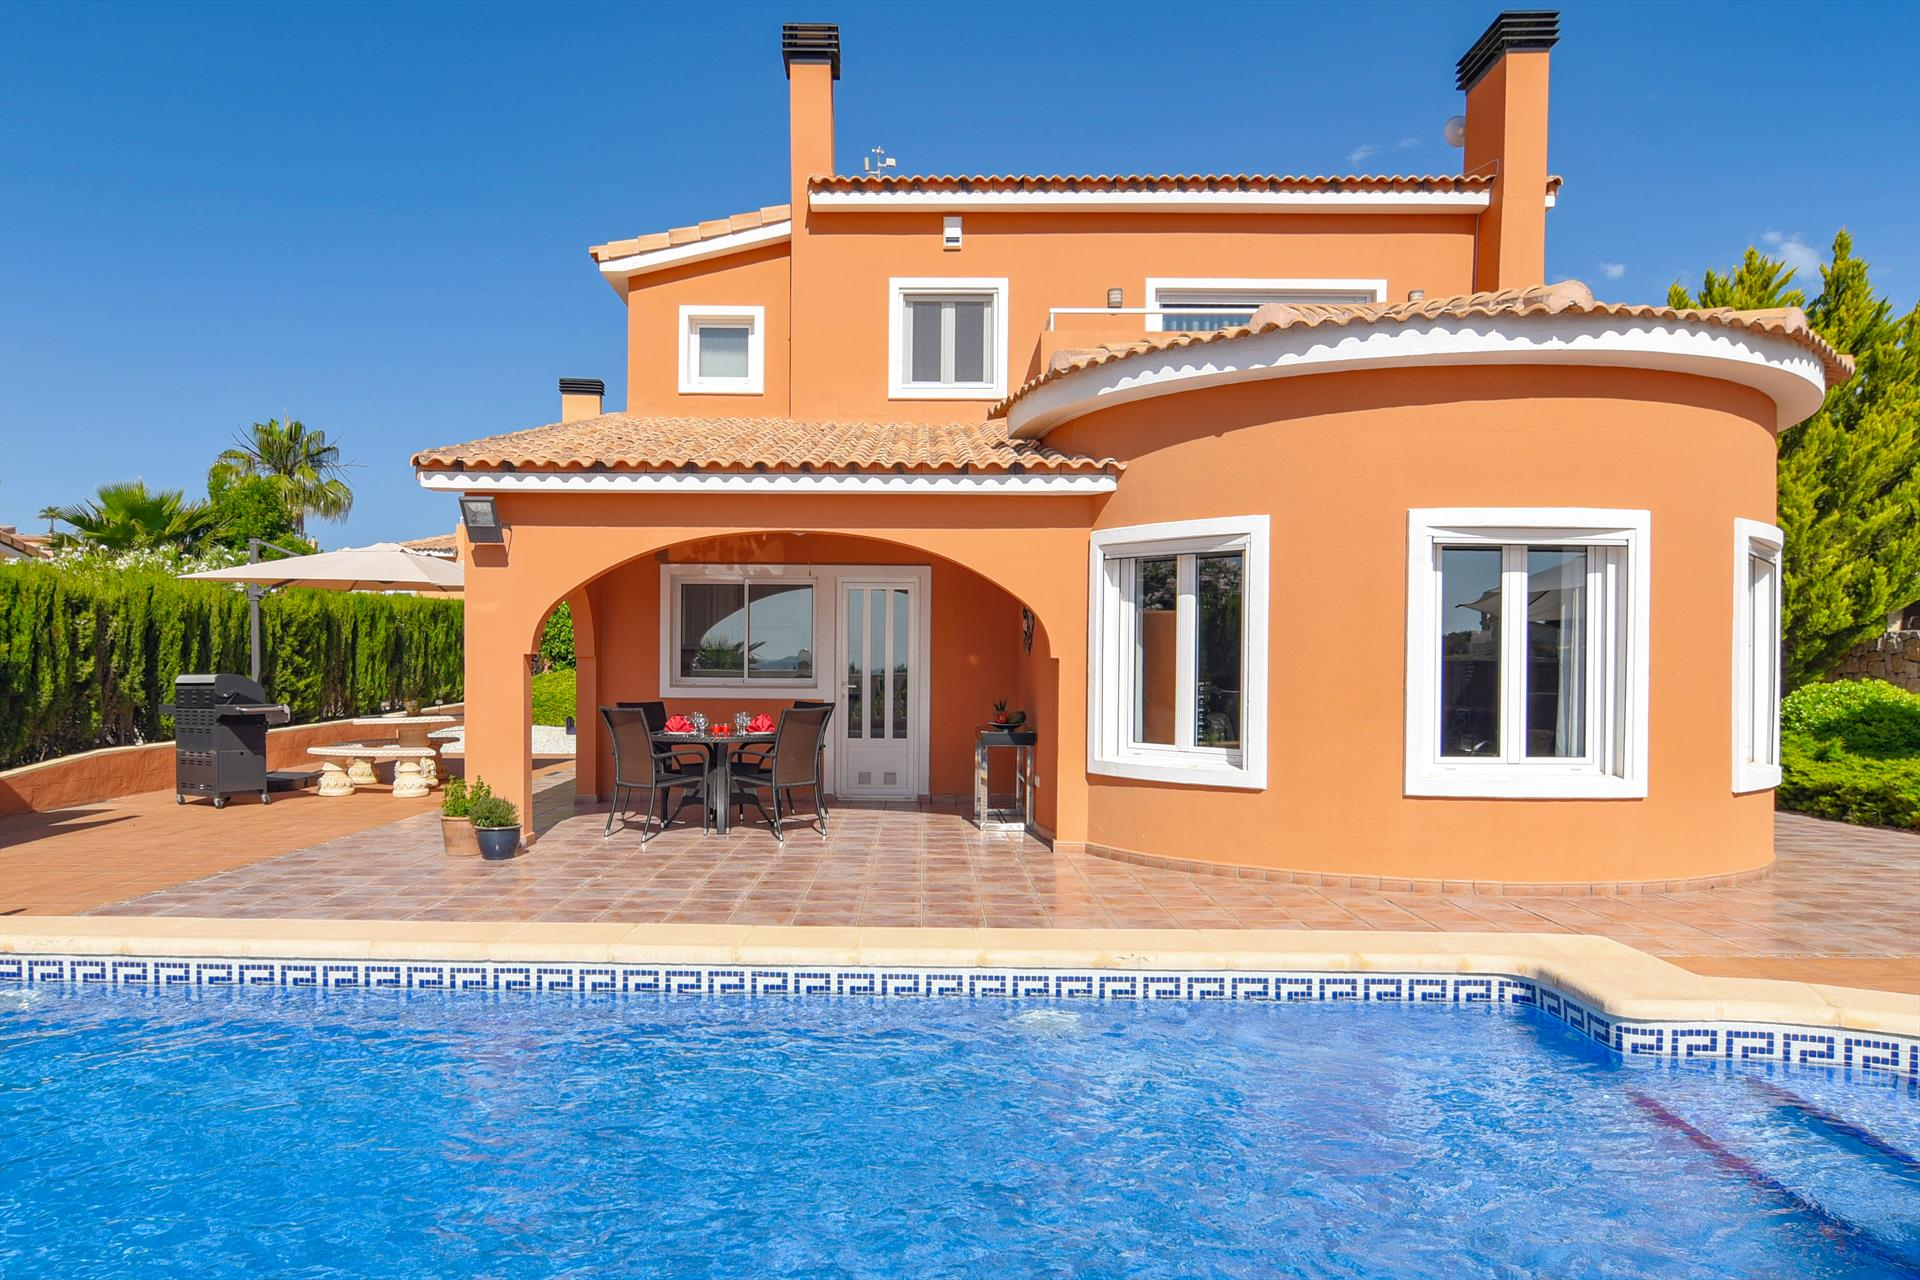 Panoramic, Beautiful and comfortable villa in Gata De Gorgos, on the Costa Blanca, Spain  with private pool for 6 persons.....